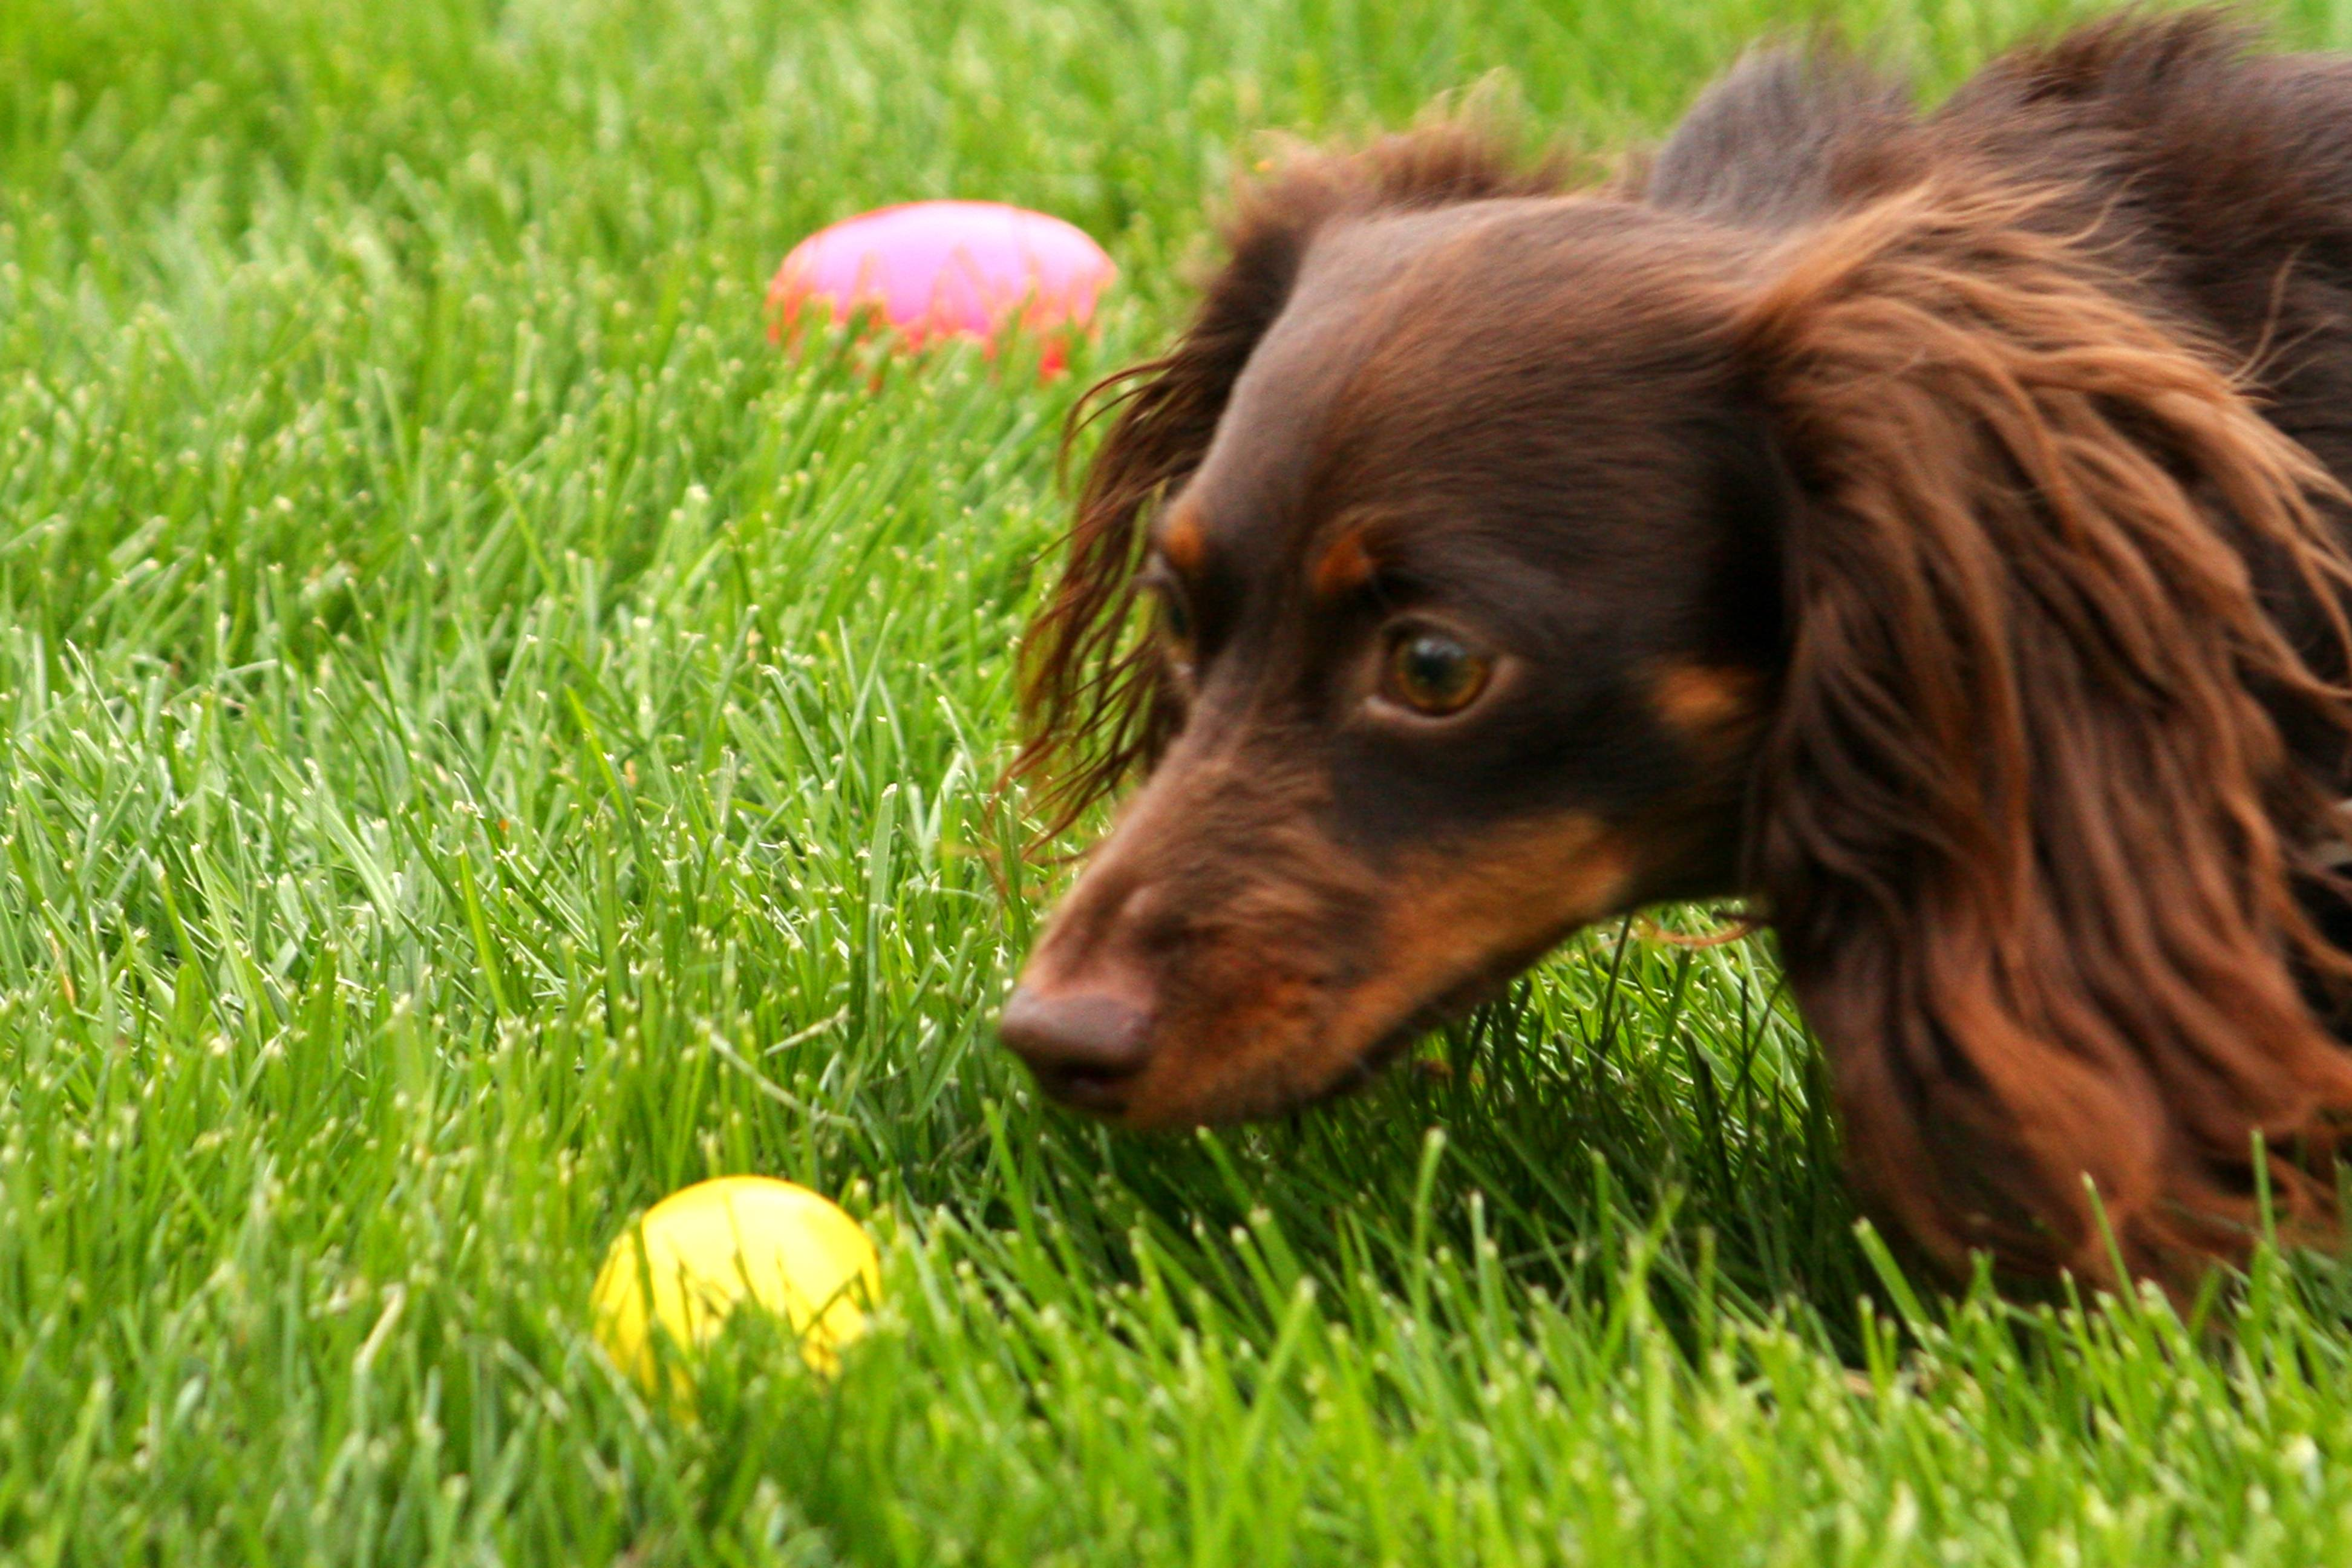 Dogs searched for treat filled eggs at the 2012 Hound Egg Hunt in Palatine.